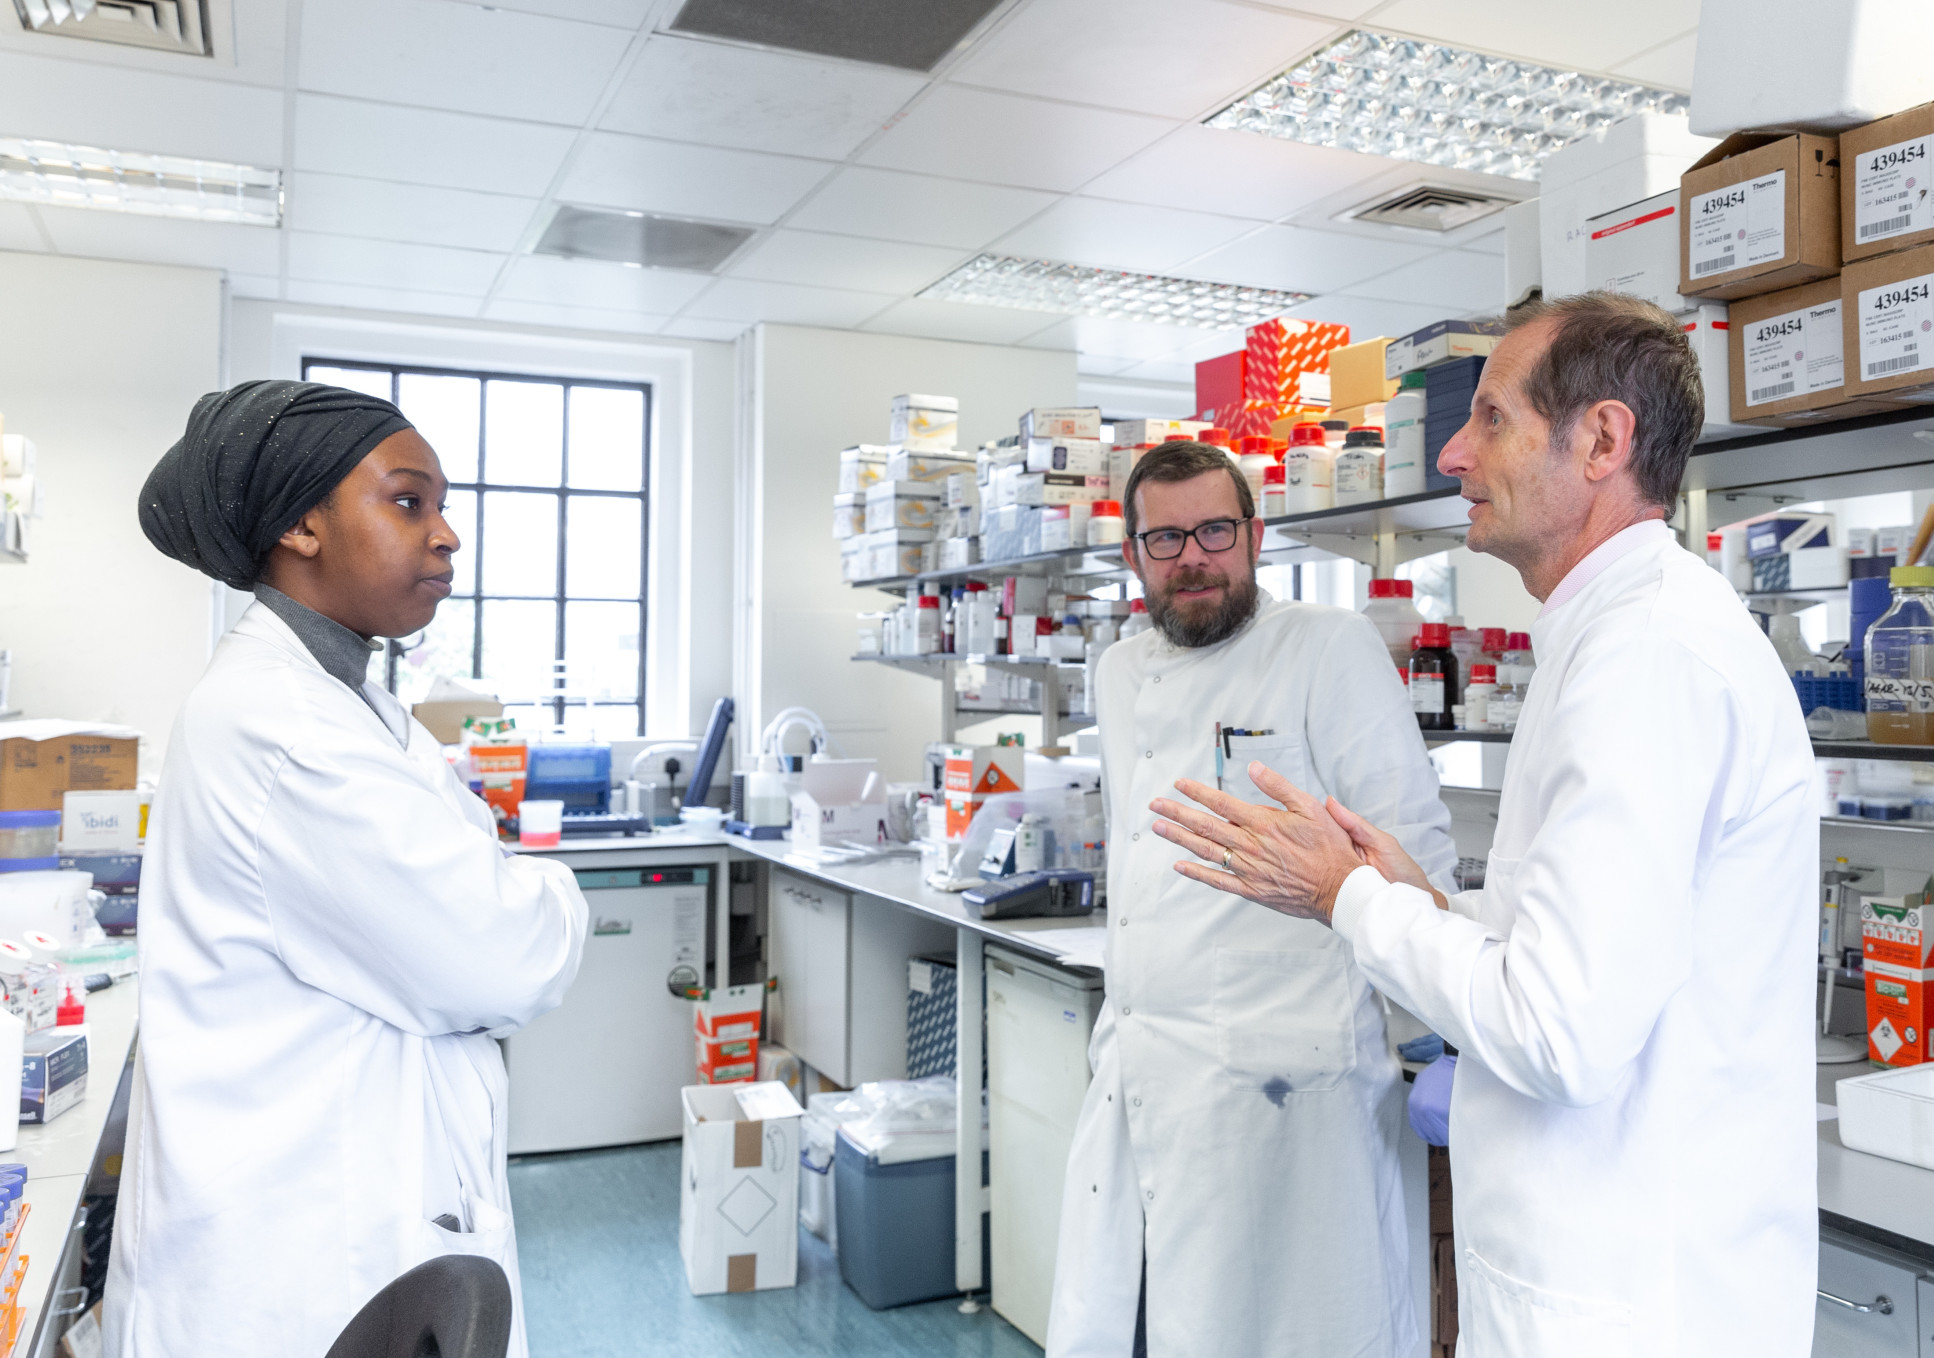 Robin Shattock and colleagues in lab